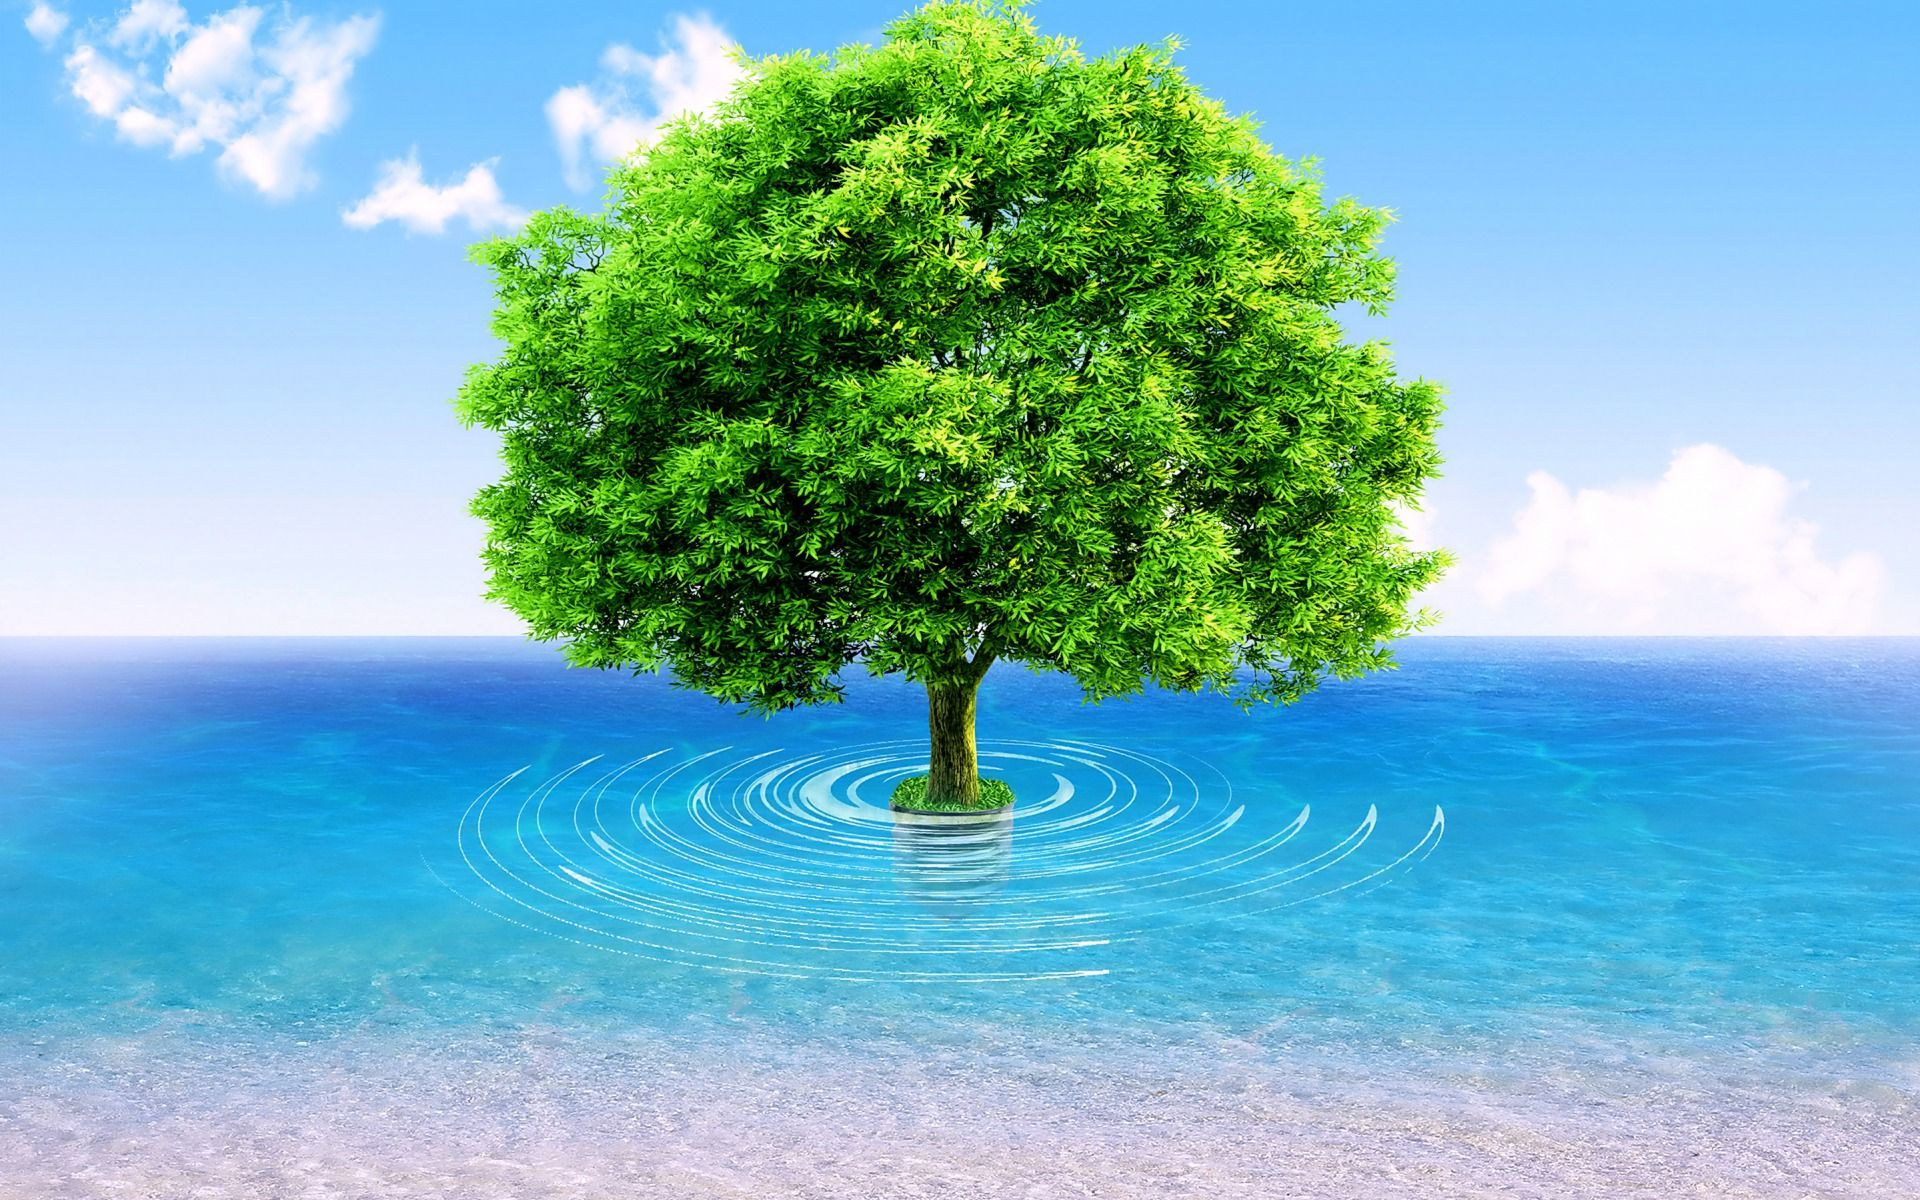 Ocean Tree Wallpapers Ocean Tree Stock Photos Tree Wallpaper Picture On Wood Background Images